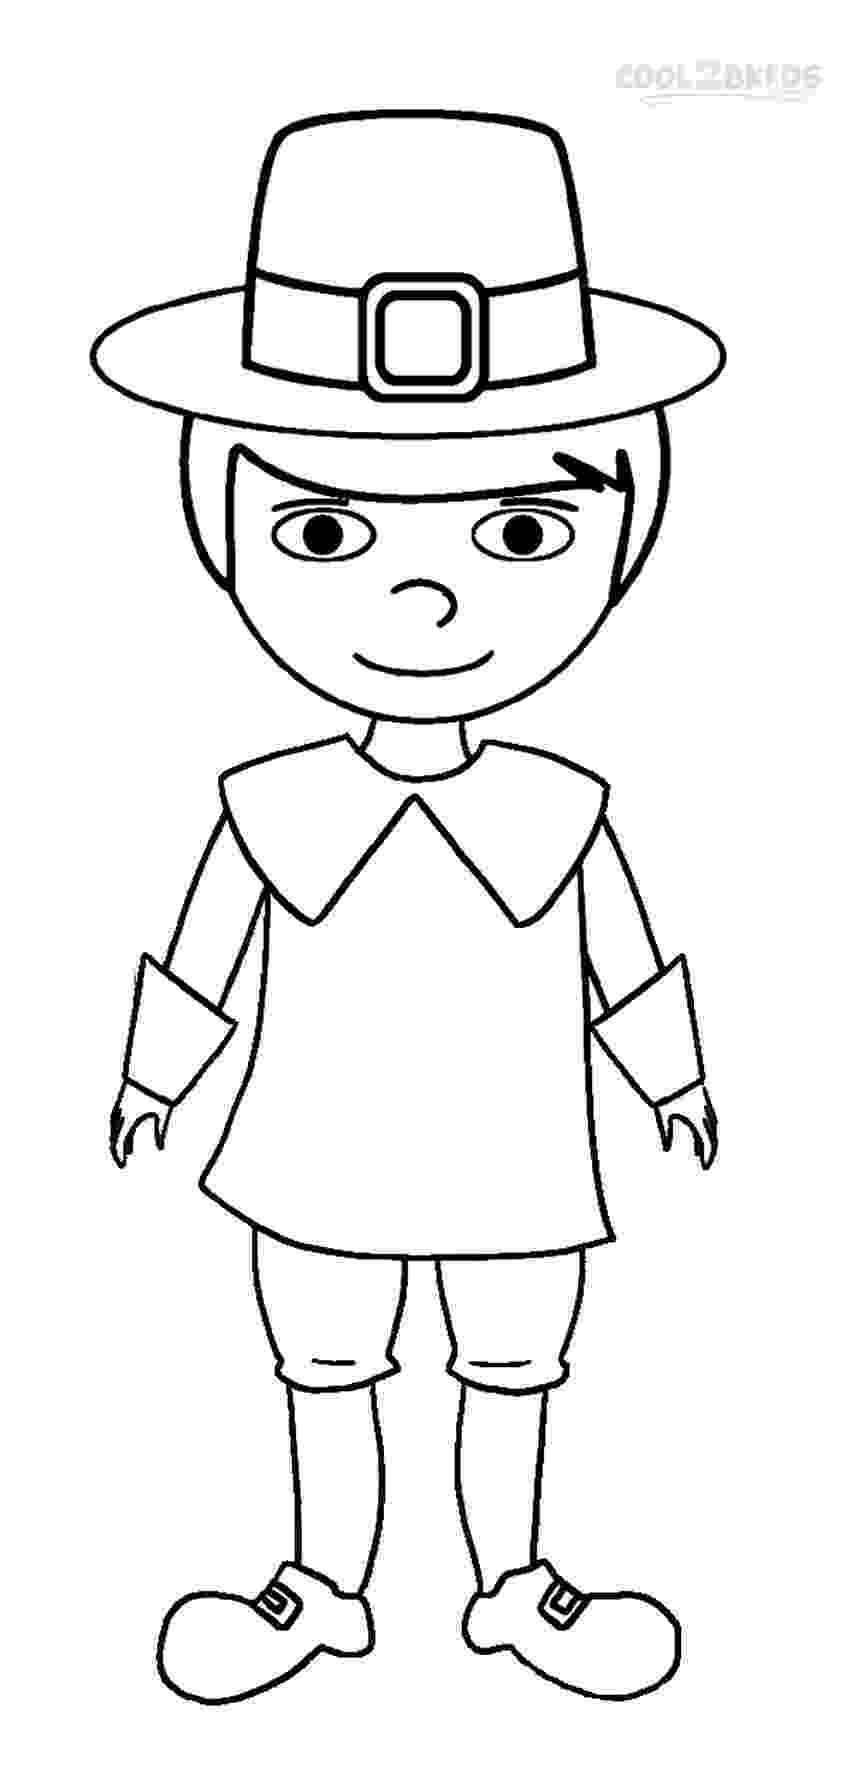 coloring pages of boys printable pilgrims coloring pages for kids cool2bkids boys of coloring pages